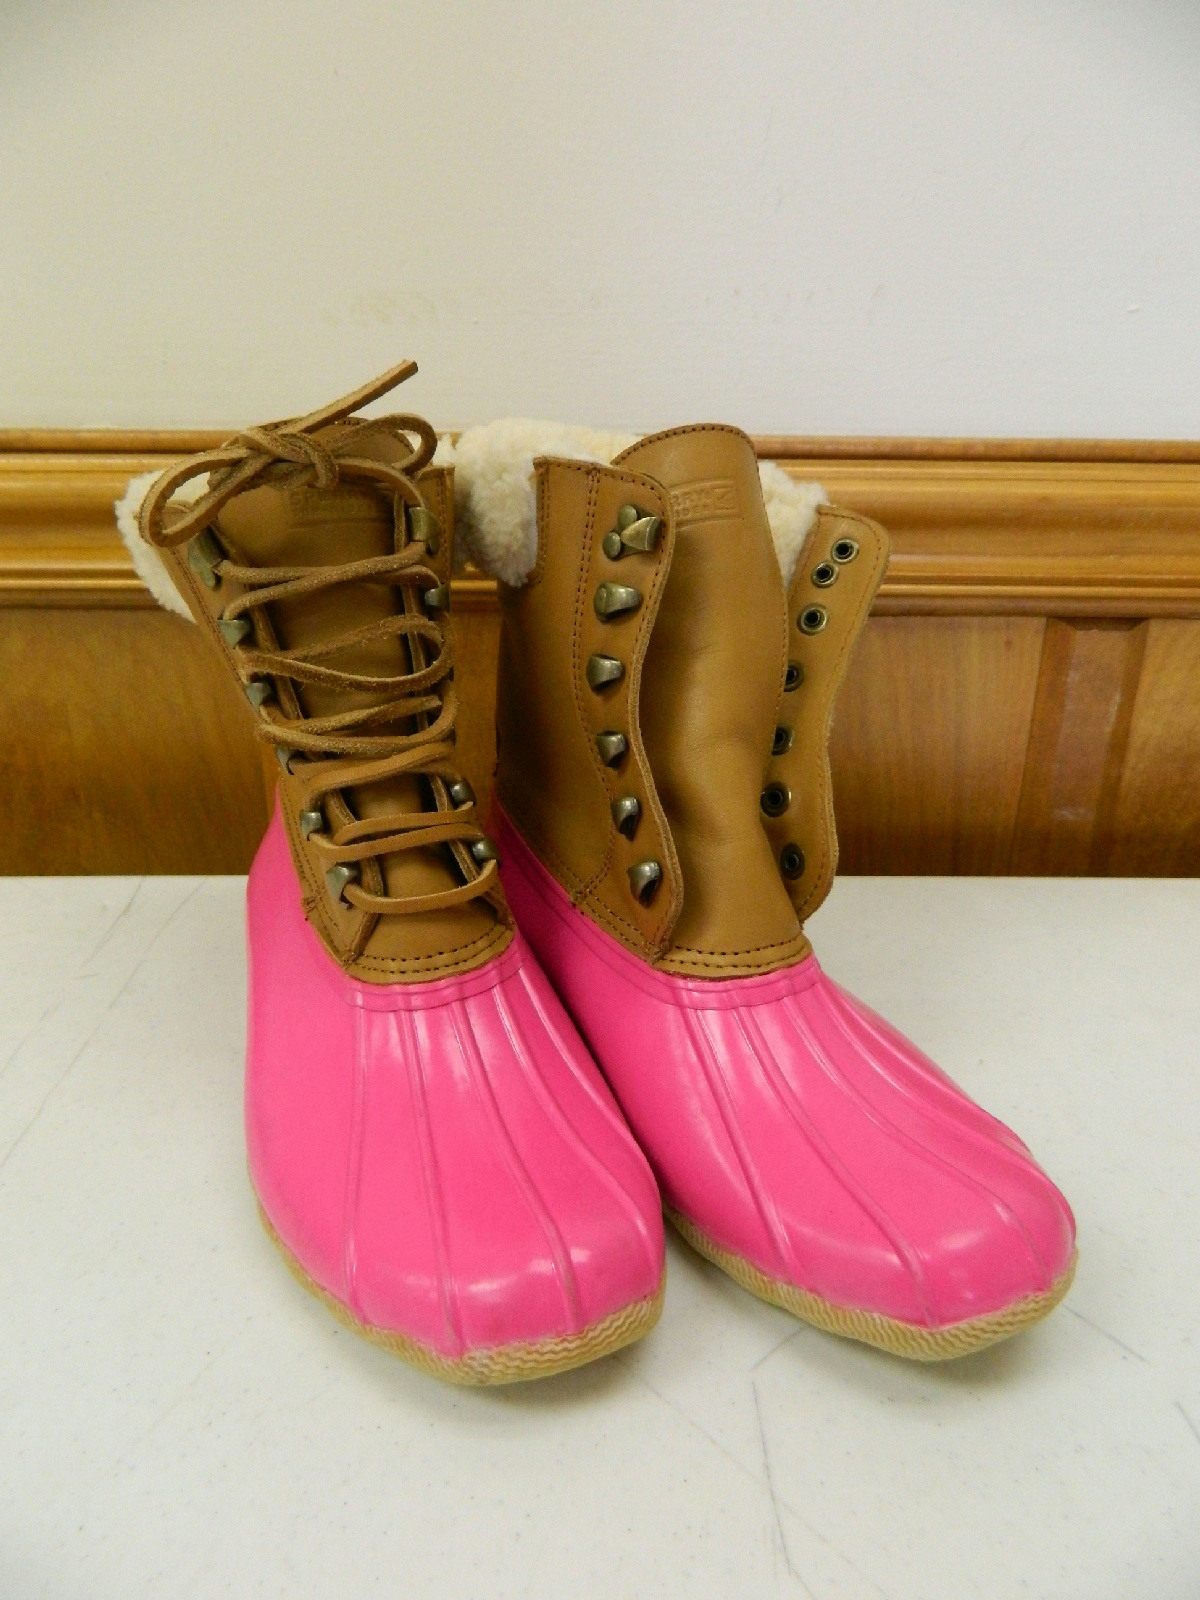 sperry top sider j crew leather shearwater boots womens 7